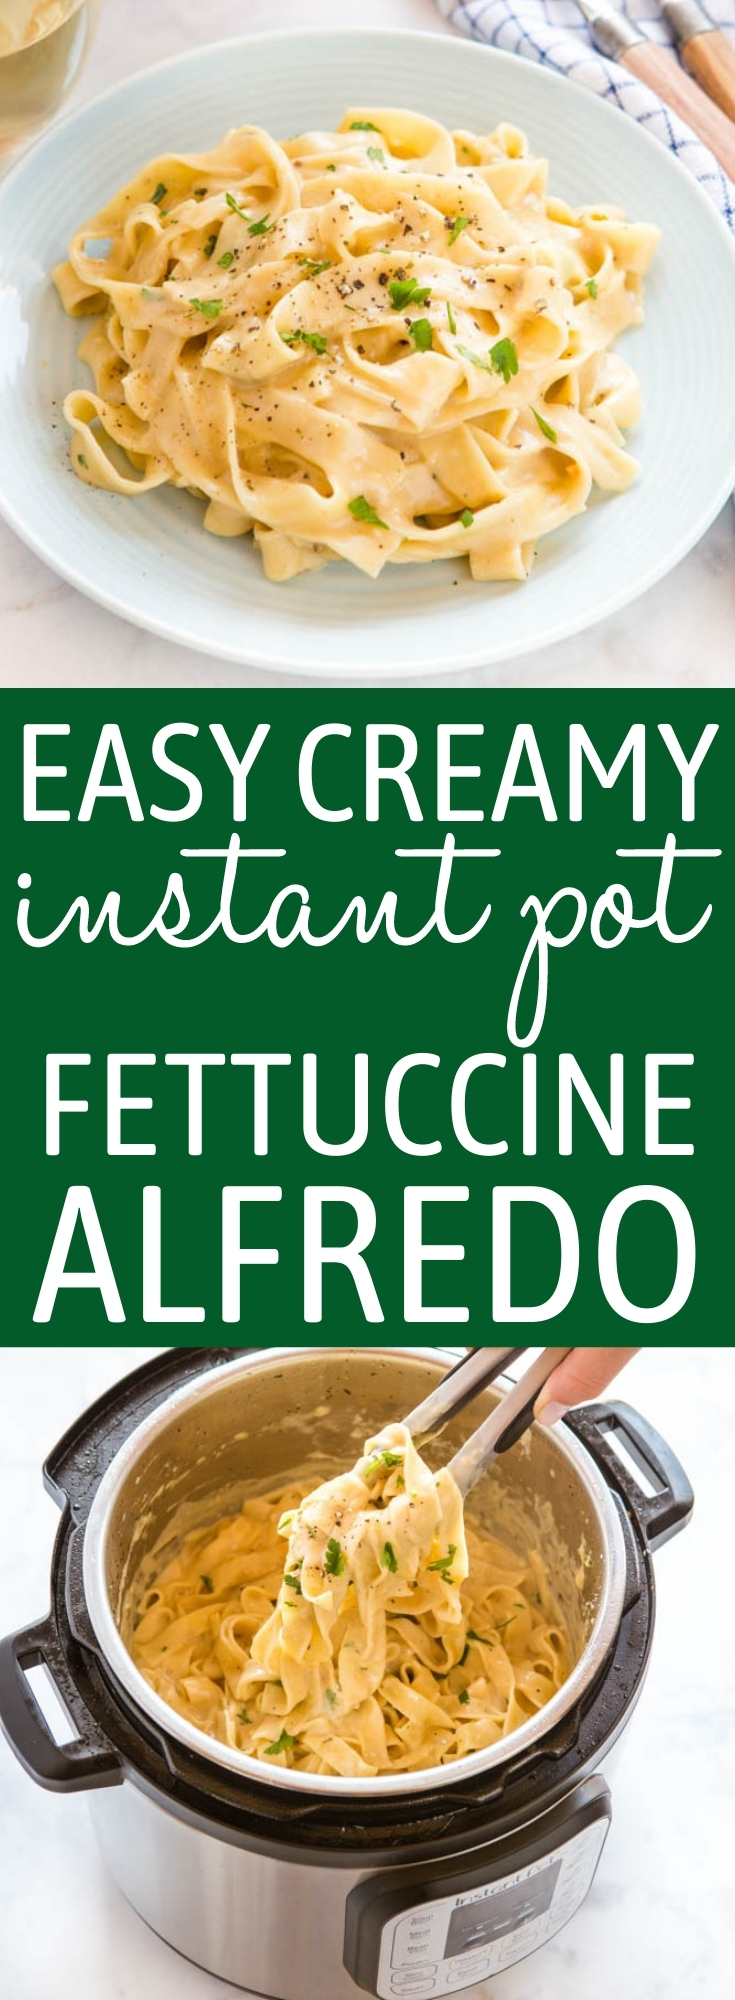 This Easy Instant Pot Fettuccine Alfredo is the perfect restaurant-quality weeknight meal - perfectly cooked pasta in a rich, creamy sauce, on the table in 20 minutes! Recipe from thebusybaker.ca! #fettuccinealfredo #instantpot #onepotpasta #alfredosauce #homemade #restaurantmeal #quickandeasy via @busybakerblog